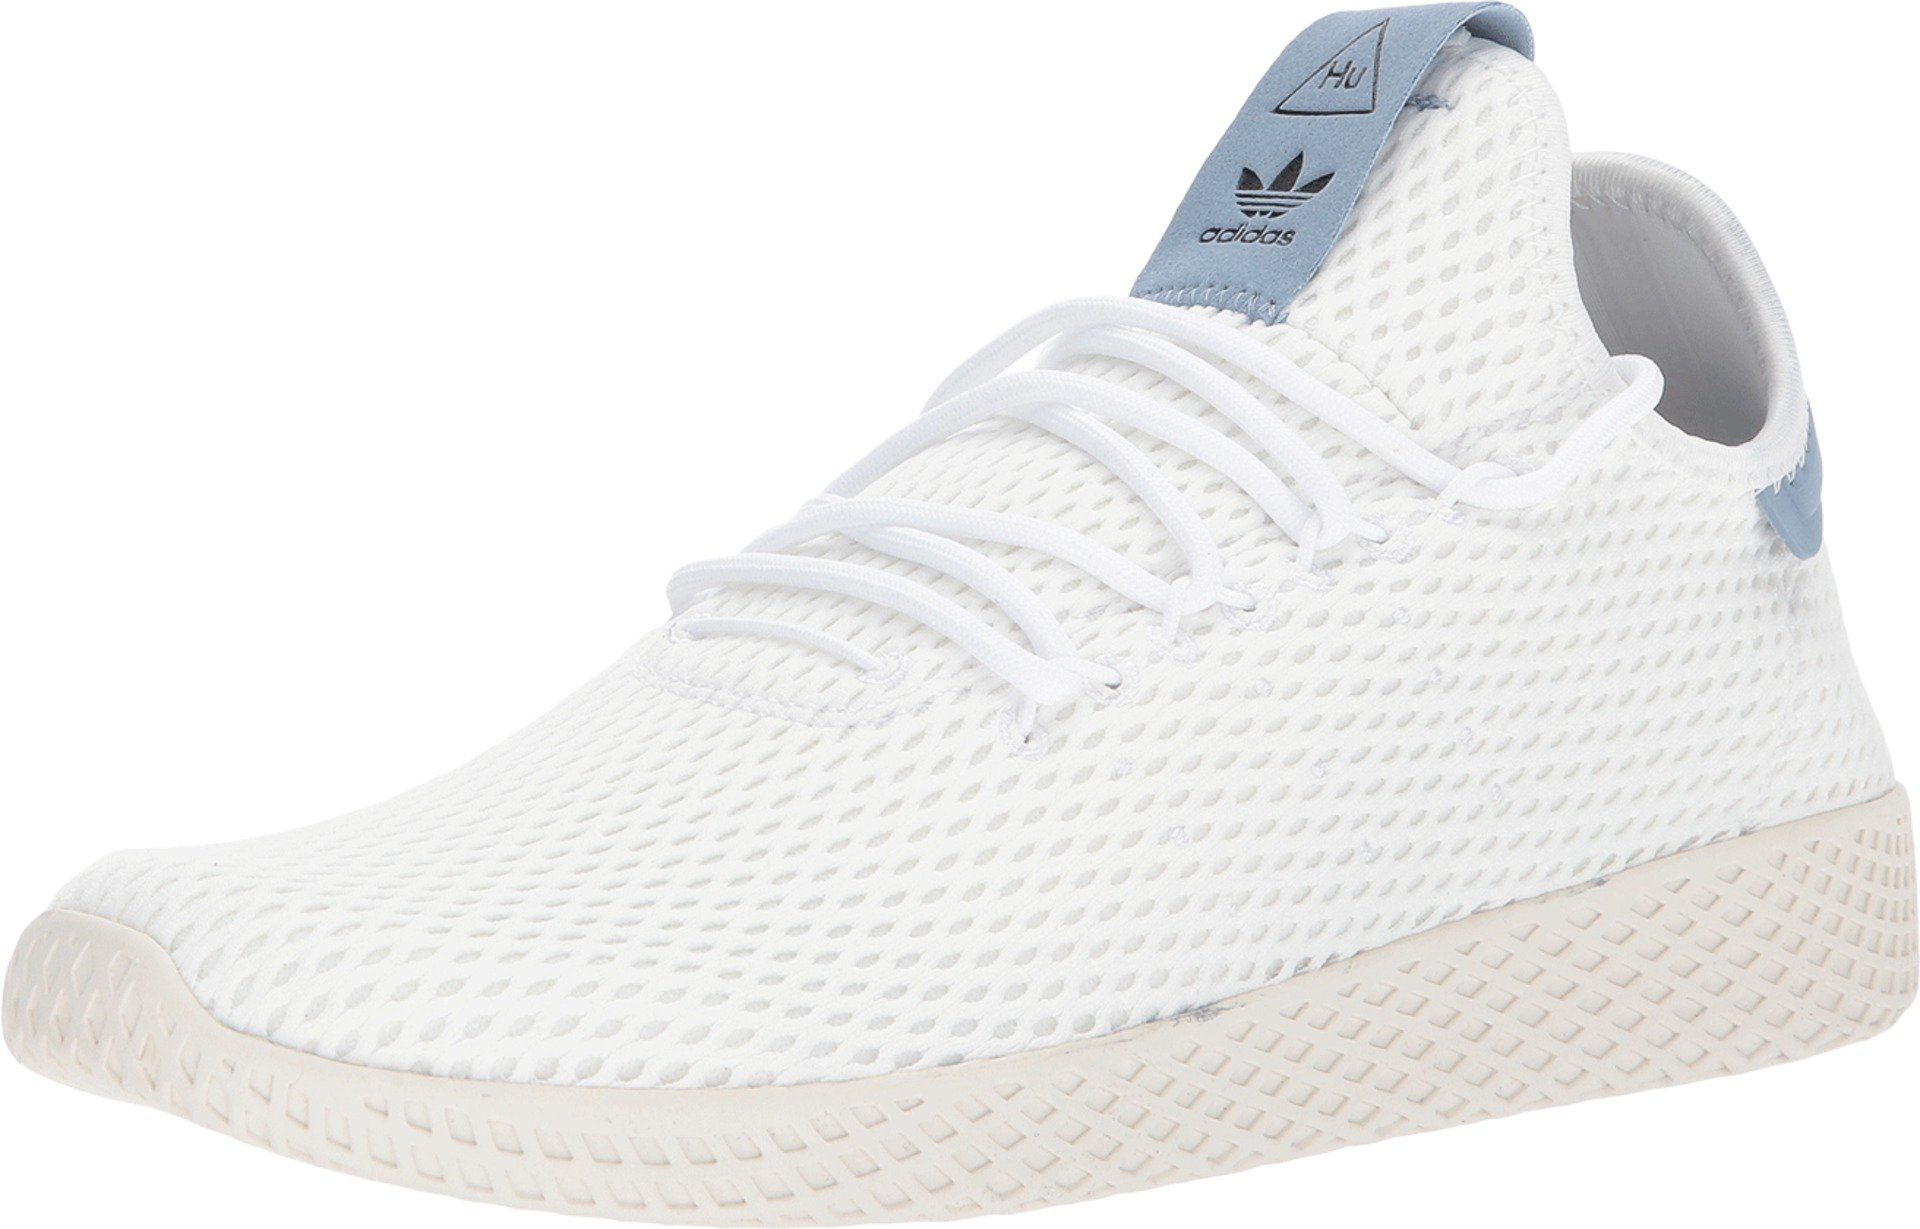 adidas Originals Men's Pharrell Williams Human Race White/White/Blue 5.5 D US D (M) by adidas Originals